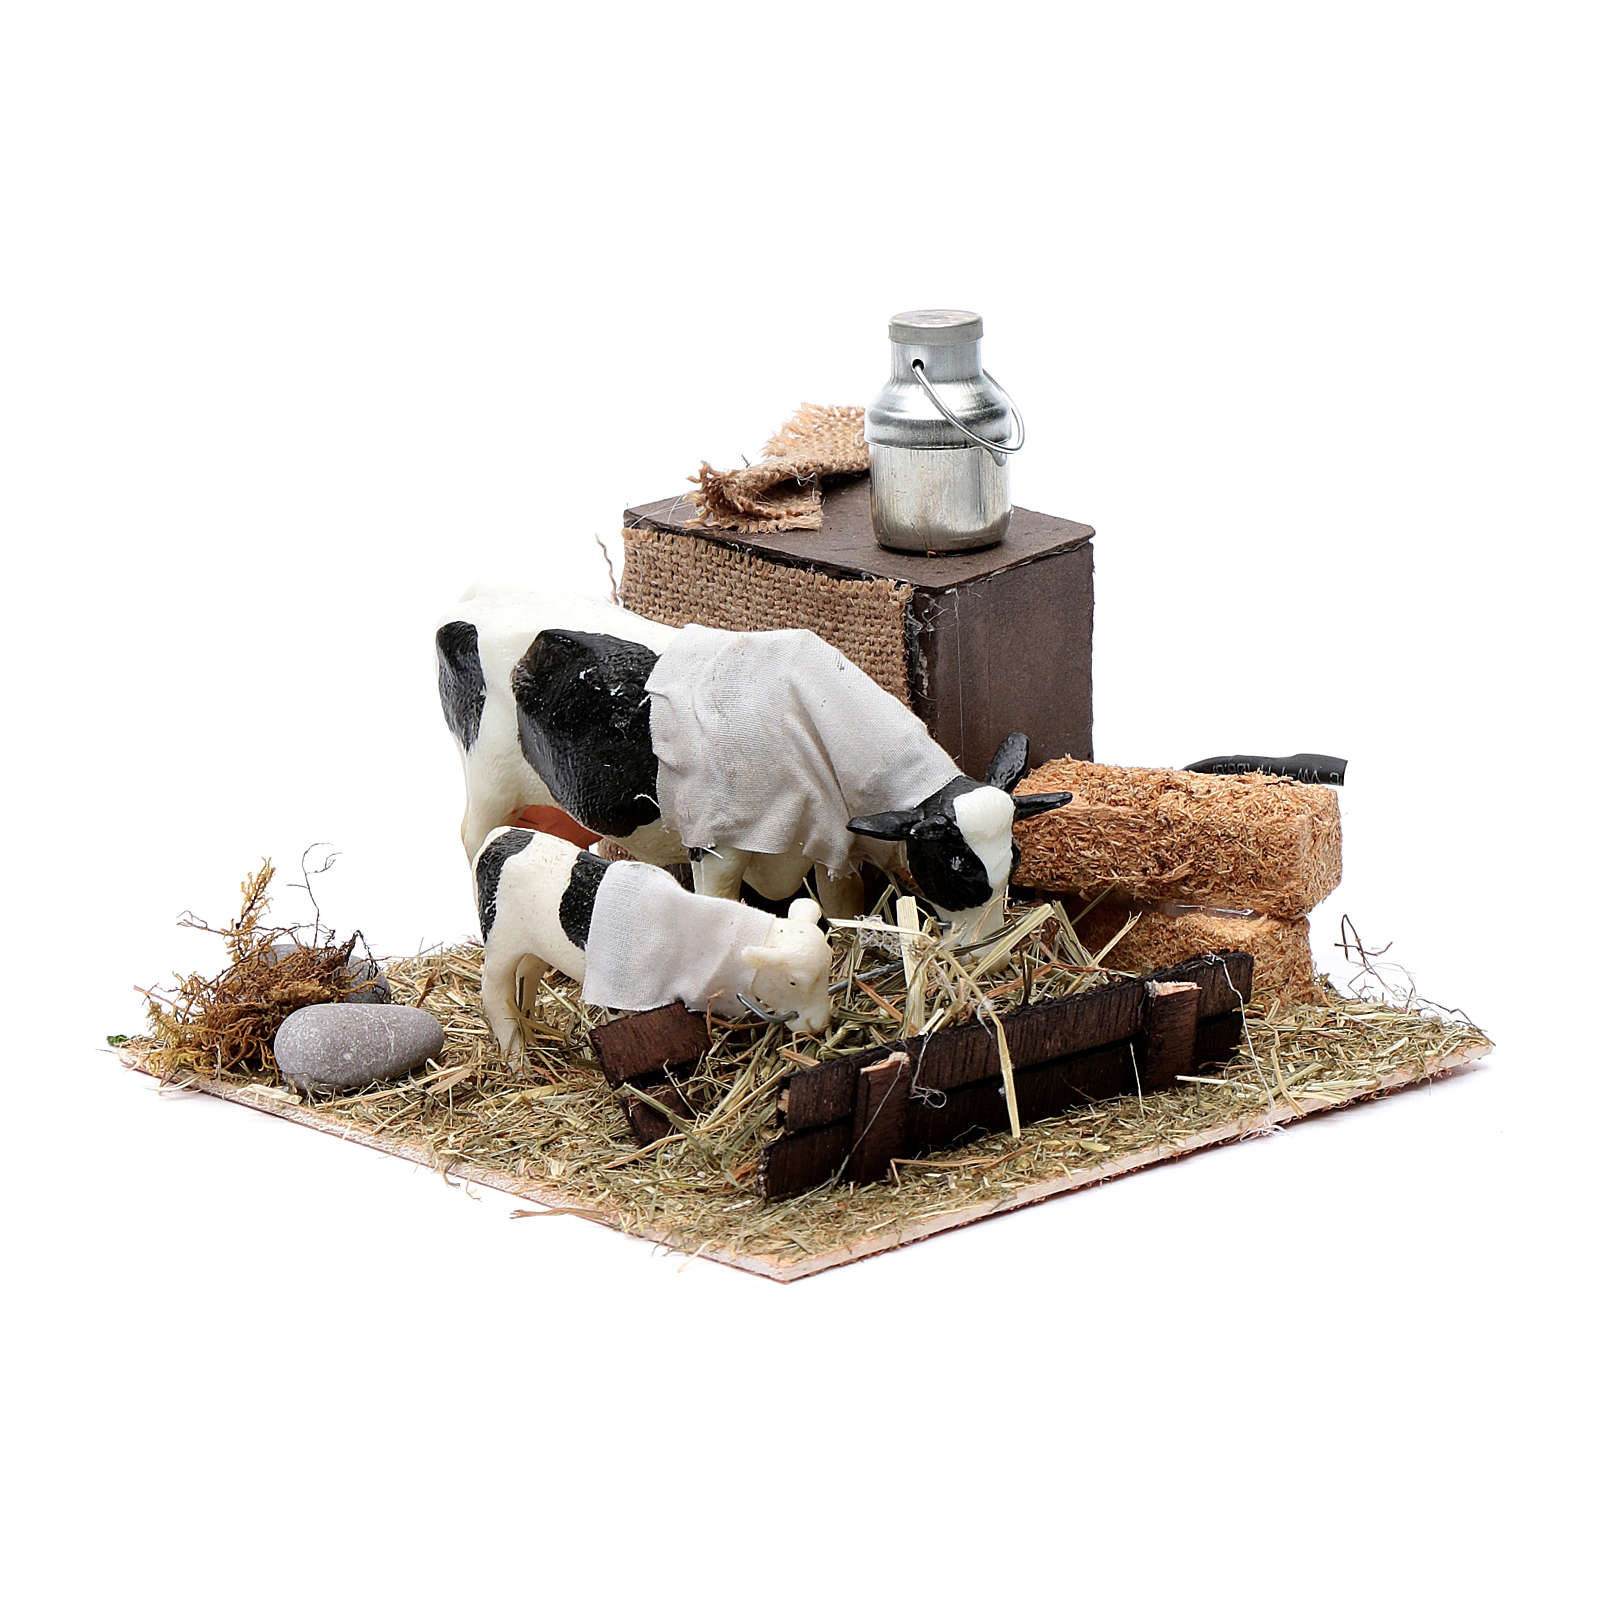 Neapolitan nativity scene cow and calf with trough in movement 12 cm 4